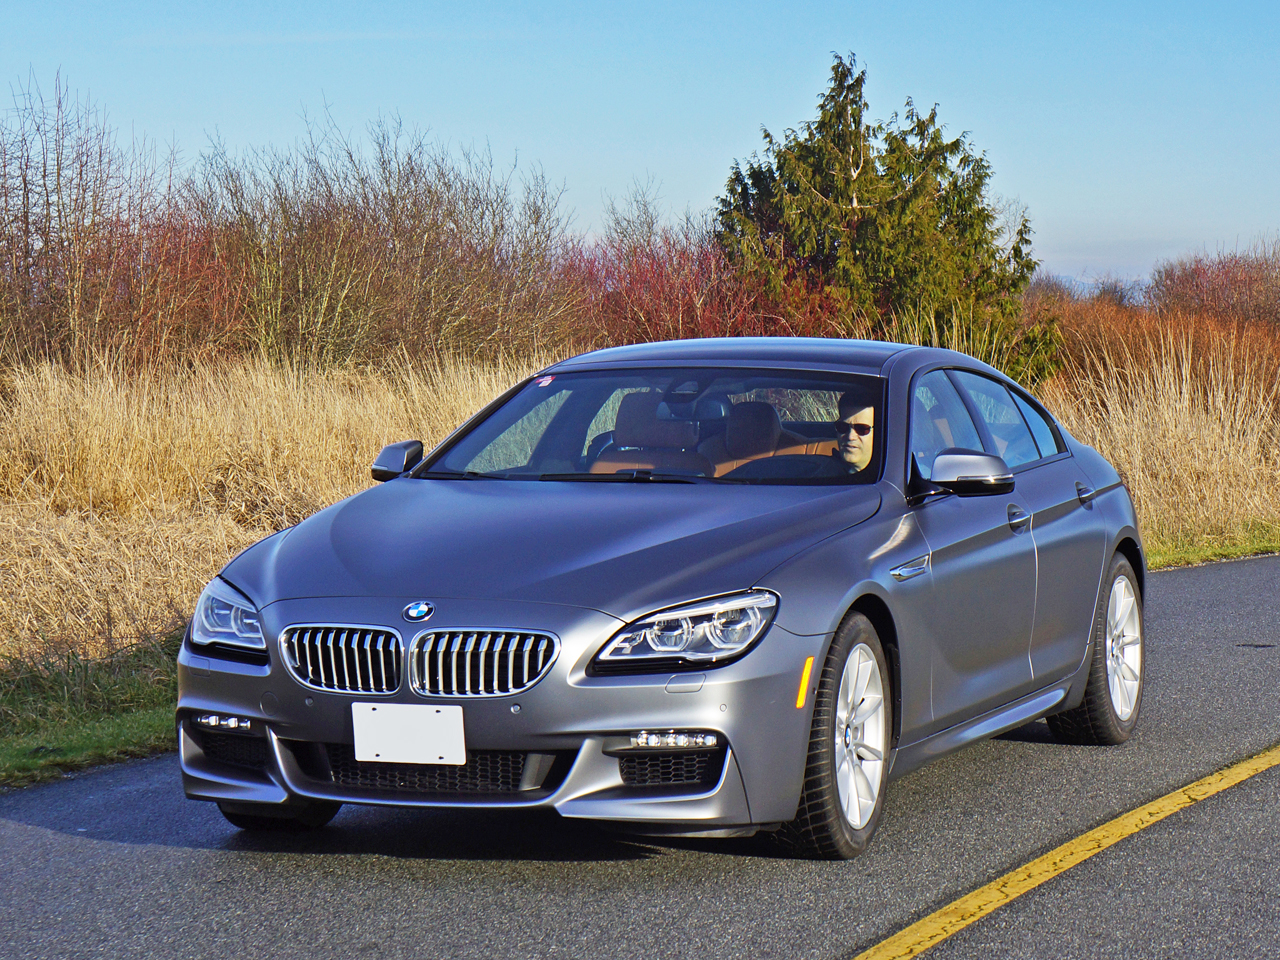 2016 bmw 650i xdrive gran coupe road test review. Black Bedroom Furniture Sets. Home Design Ideas